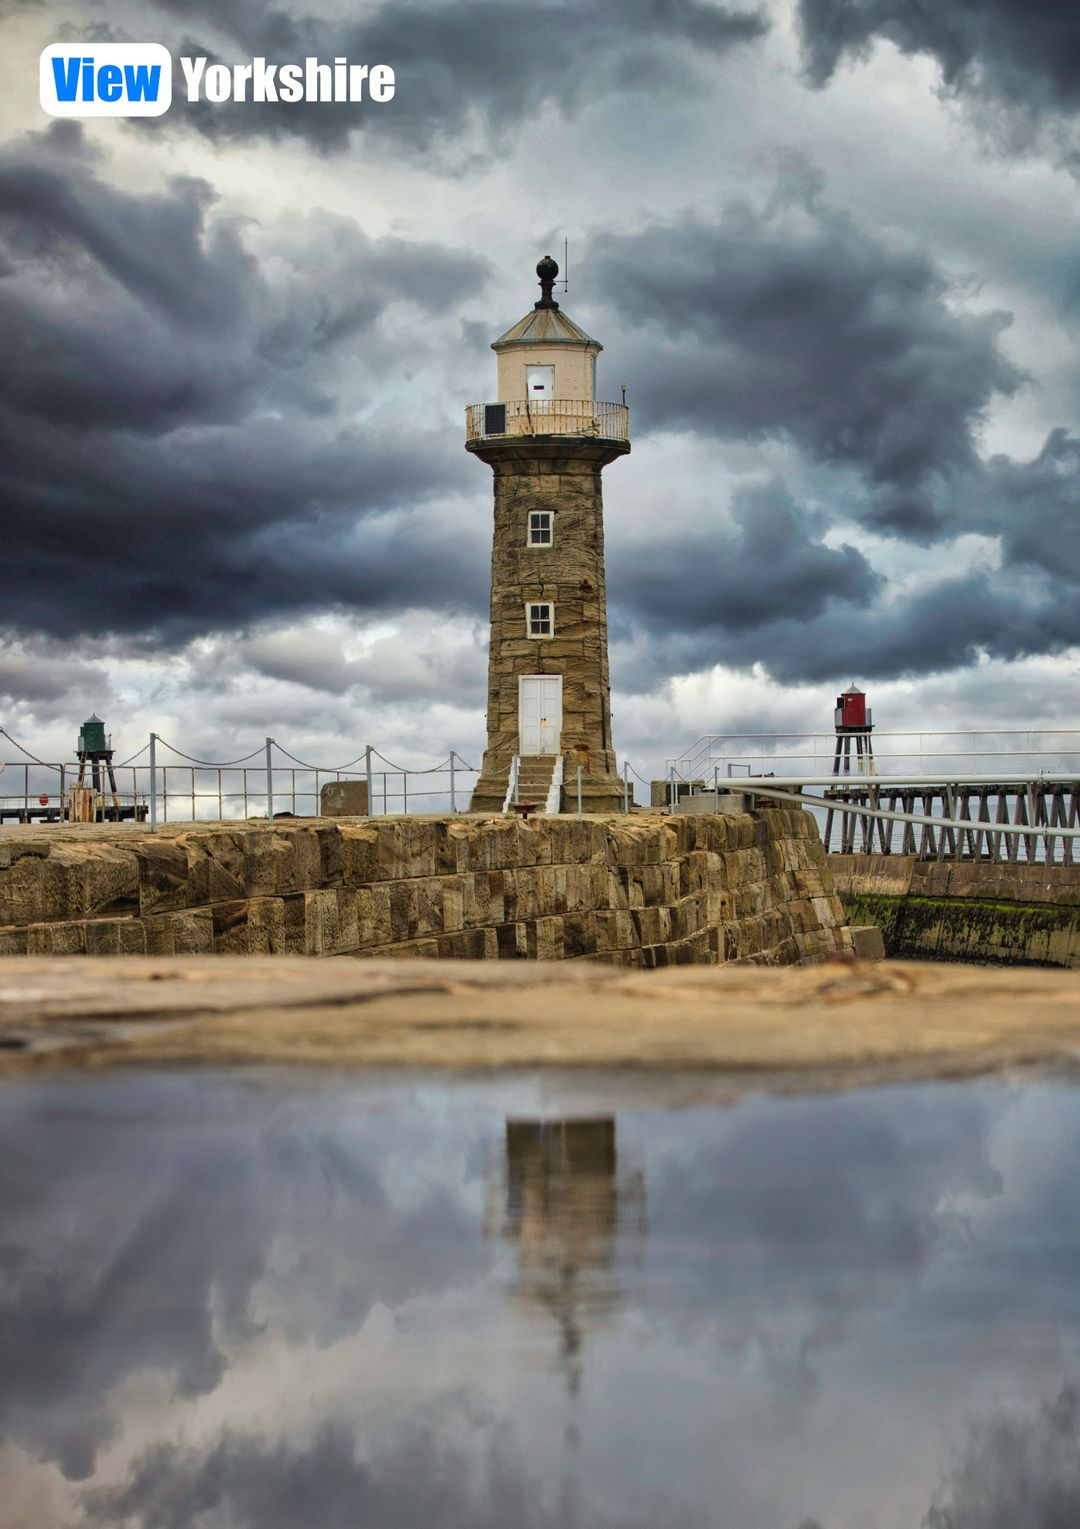 Description: Photo of Whitby Lighthouse